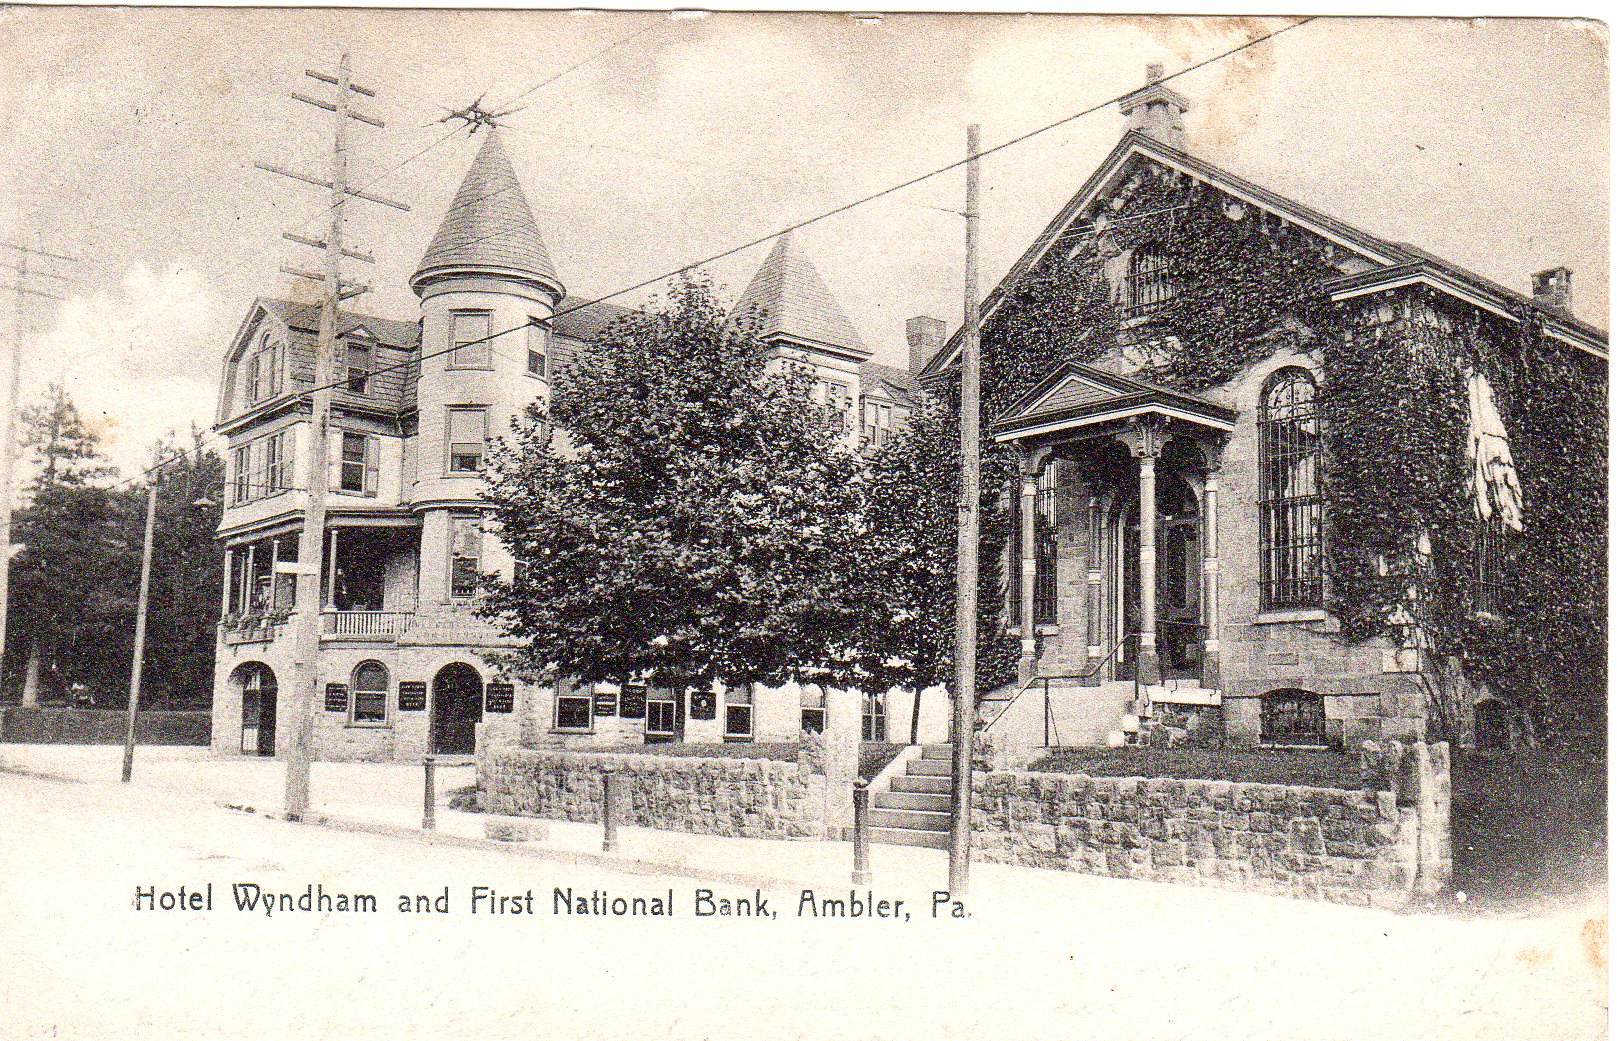 Post Card Collection (E Simon)_2682_44_Hotel Wyndham and First National Bank, Ambler, Pa_27 May 1907